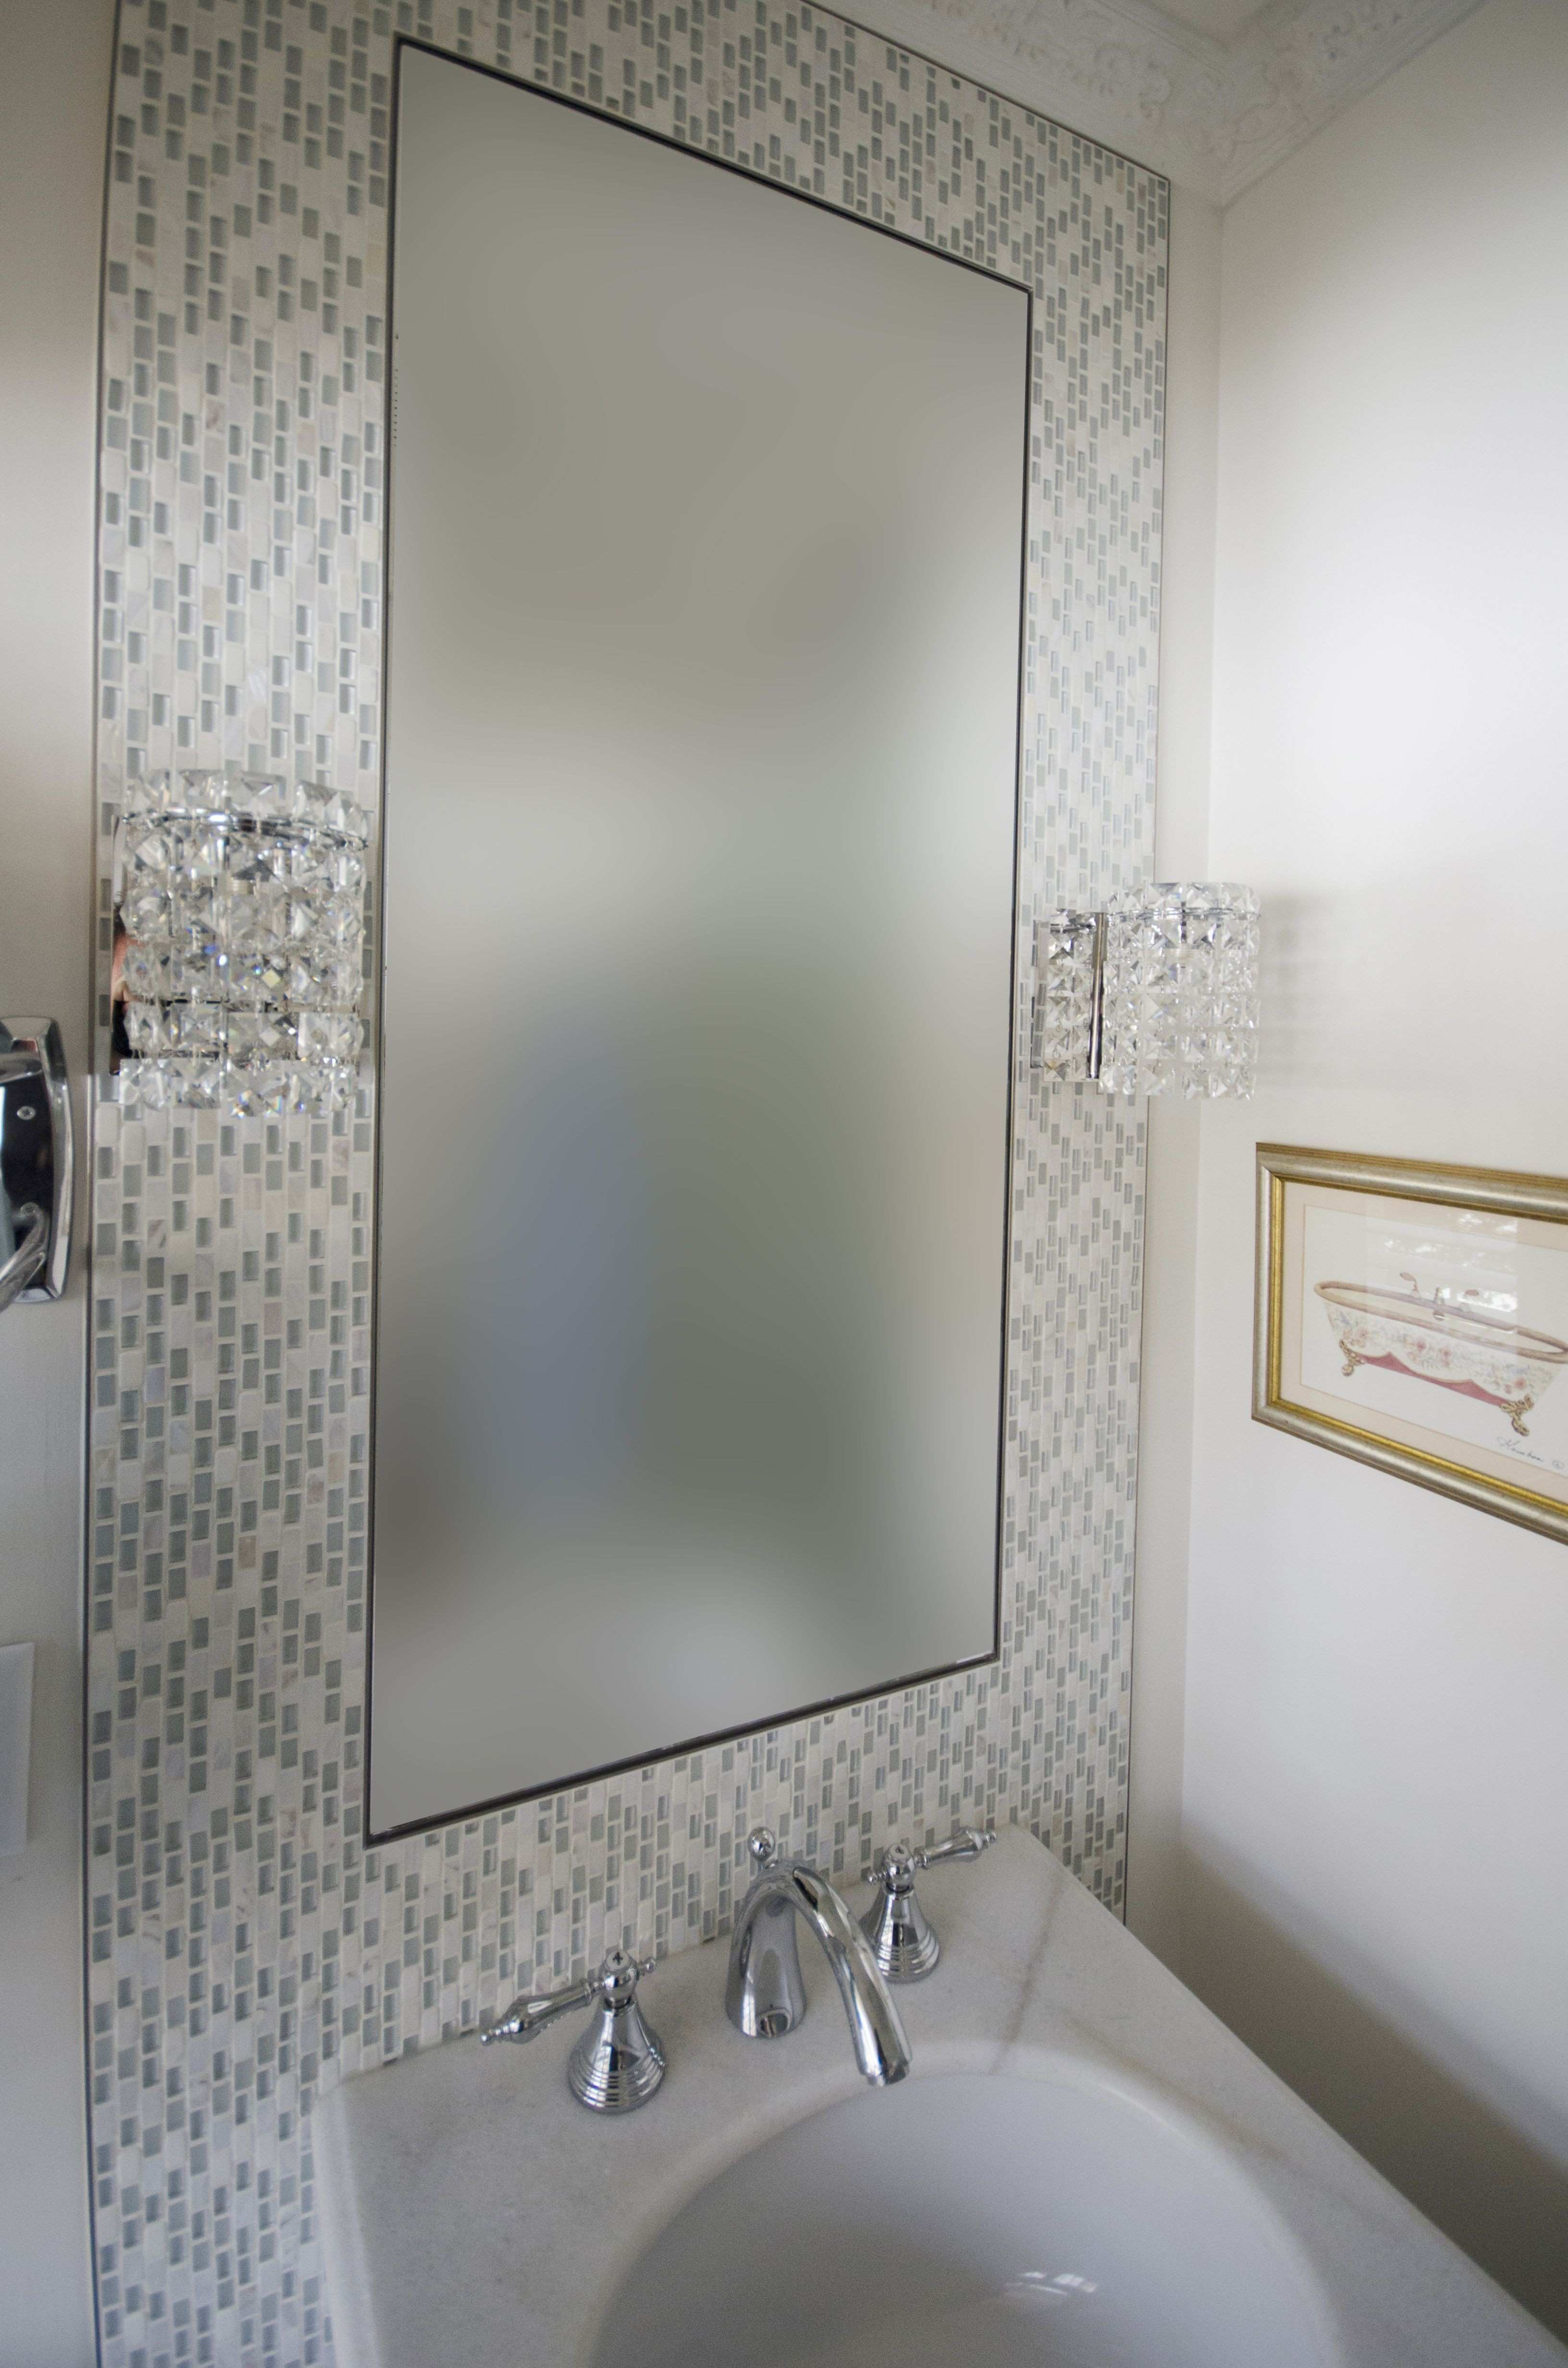 Vanity wall sconces installed on the mosaic mirror frame great for